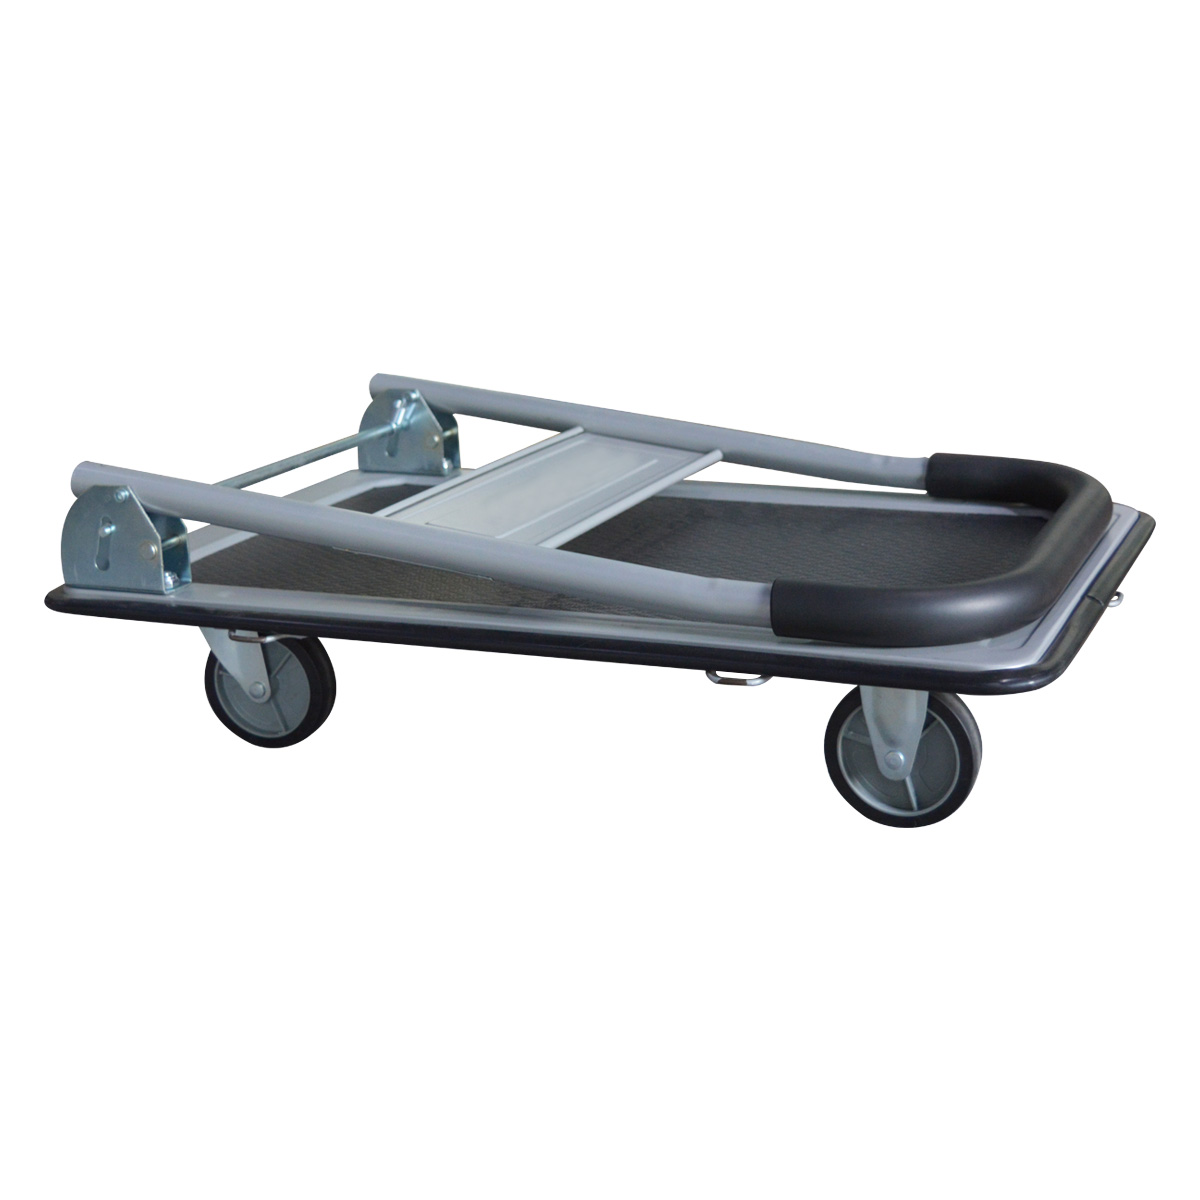 "Folding Platform Truck with 35 x 23 Solid Steel Deck 5"" Rubber Wheels 600 Lb. Capacity for sale"